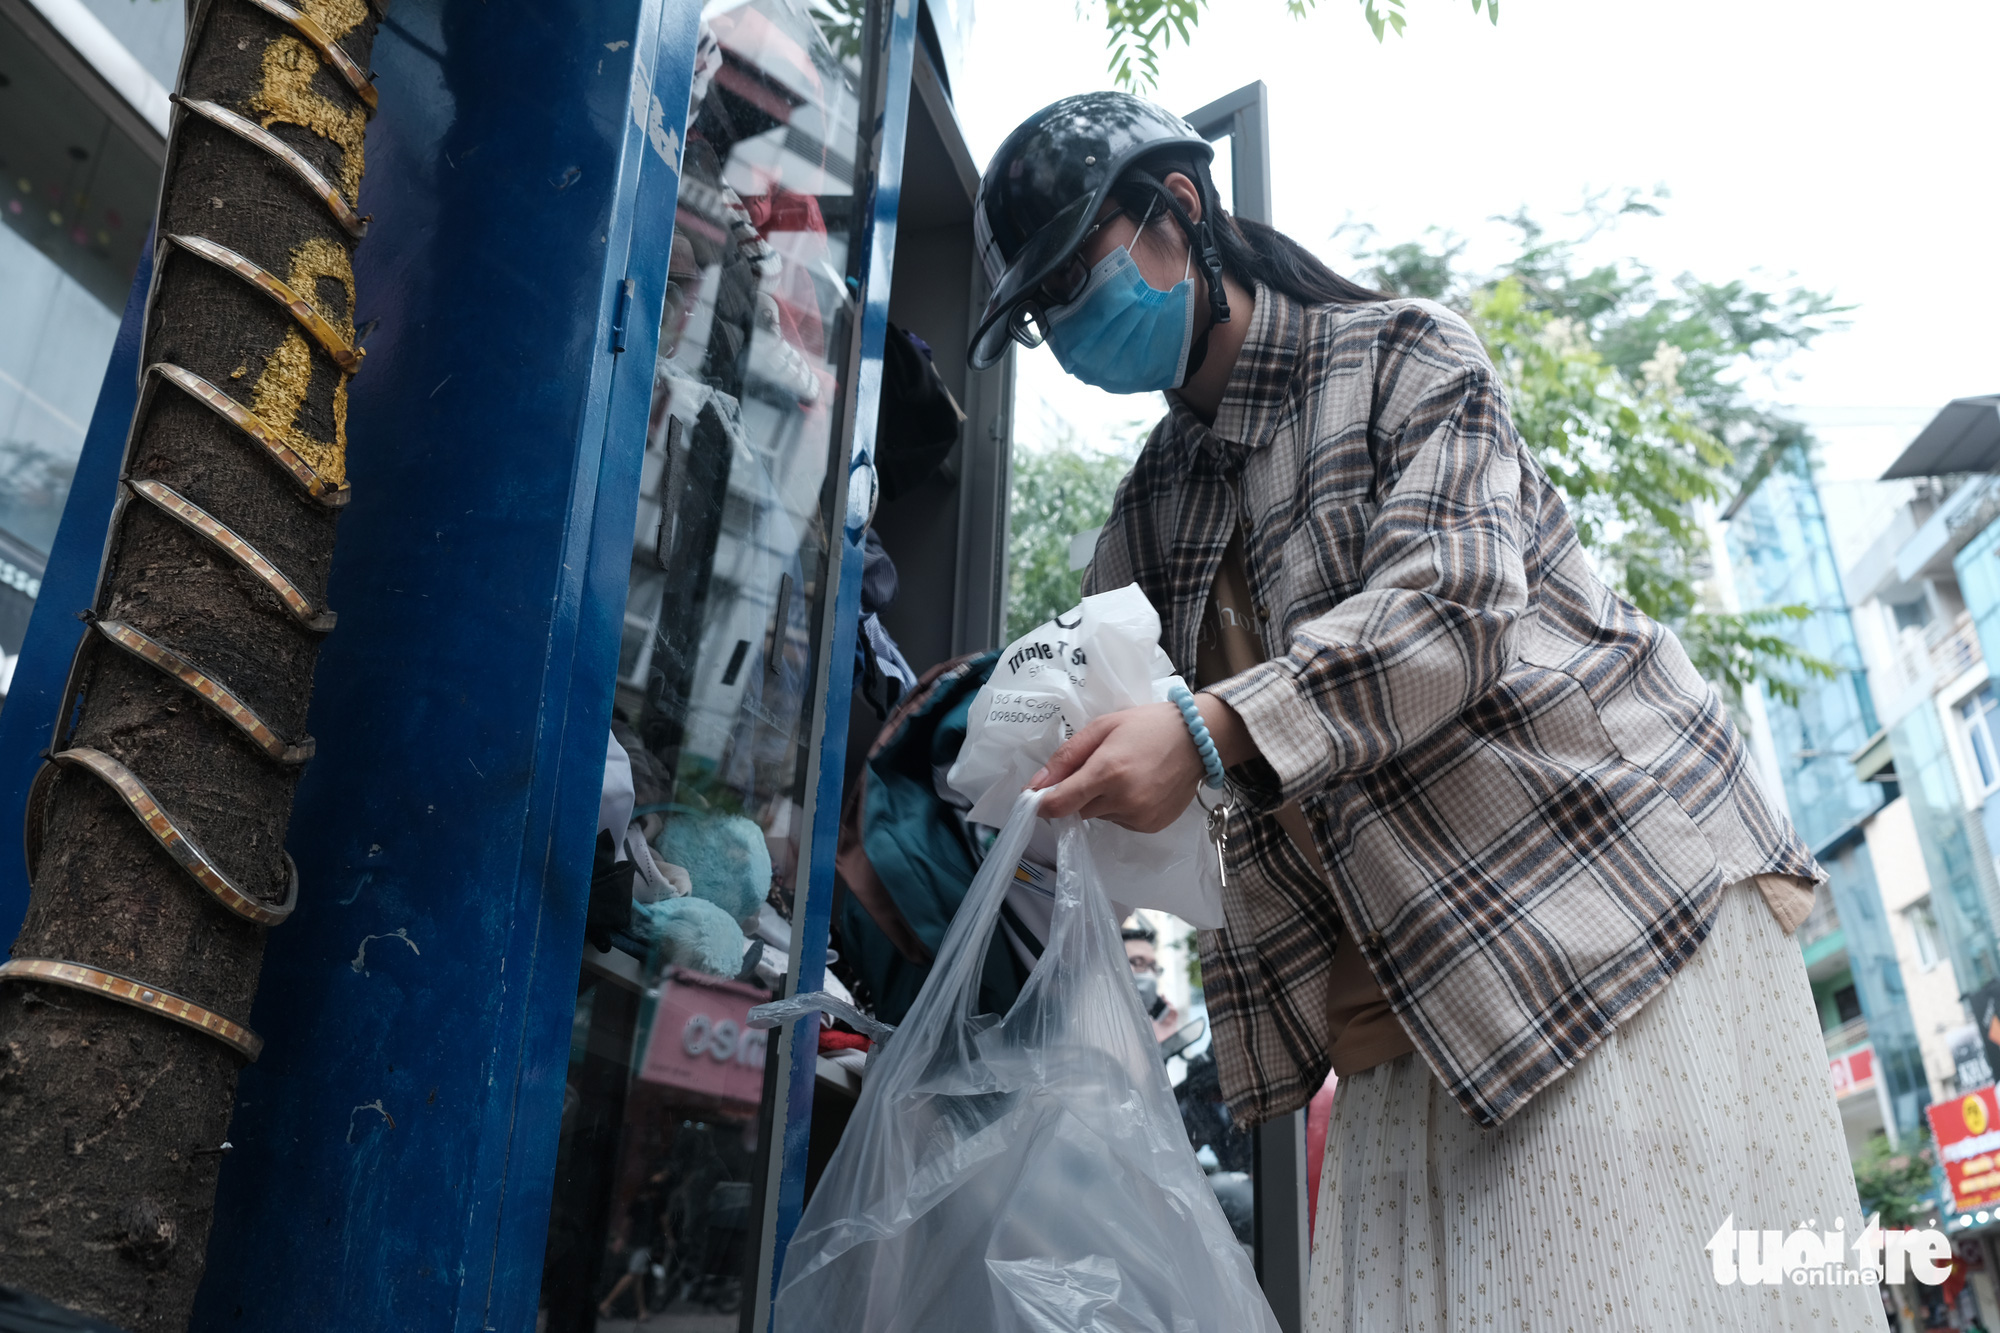 Donor Nguyen Thu Huyen donates her clothes to a free clothes cabinet outside a store in Hanoi, Vietnam. Photo: Song La / Tuoi Tre